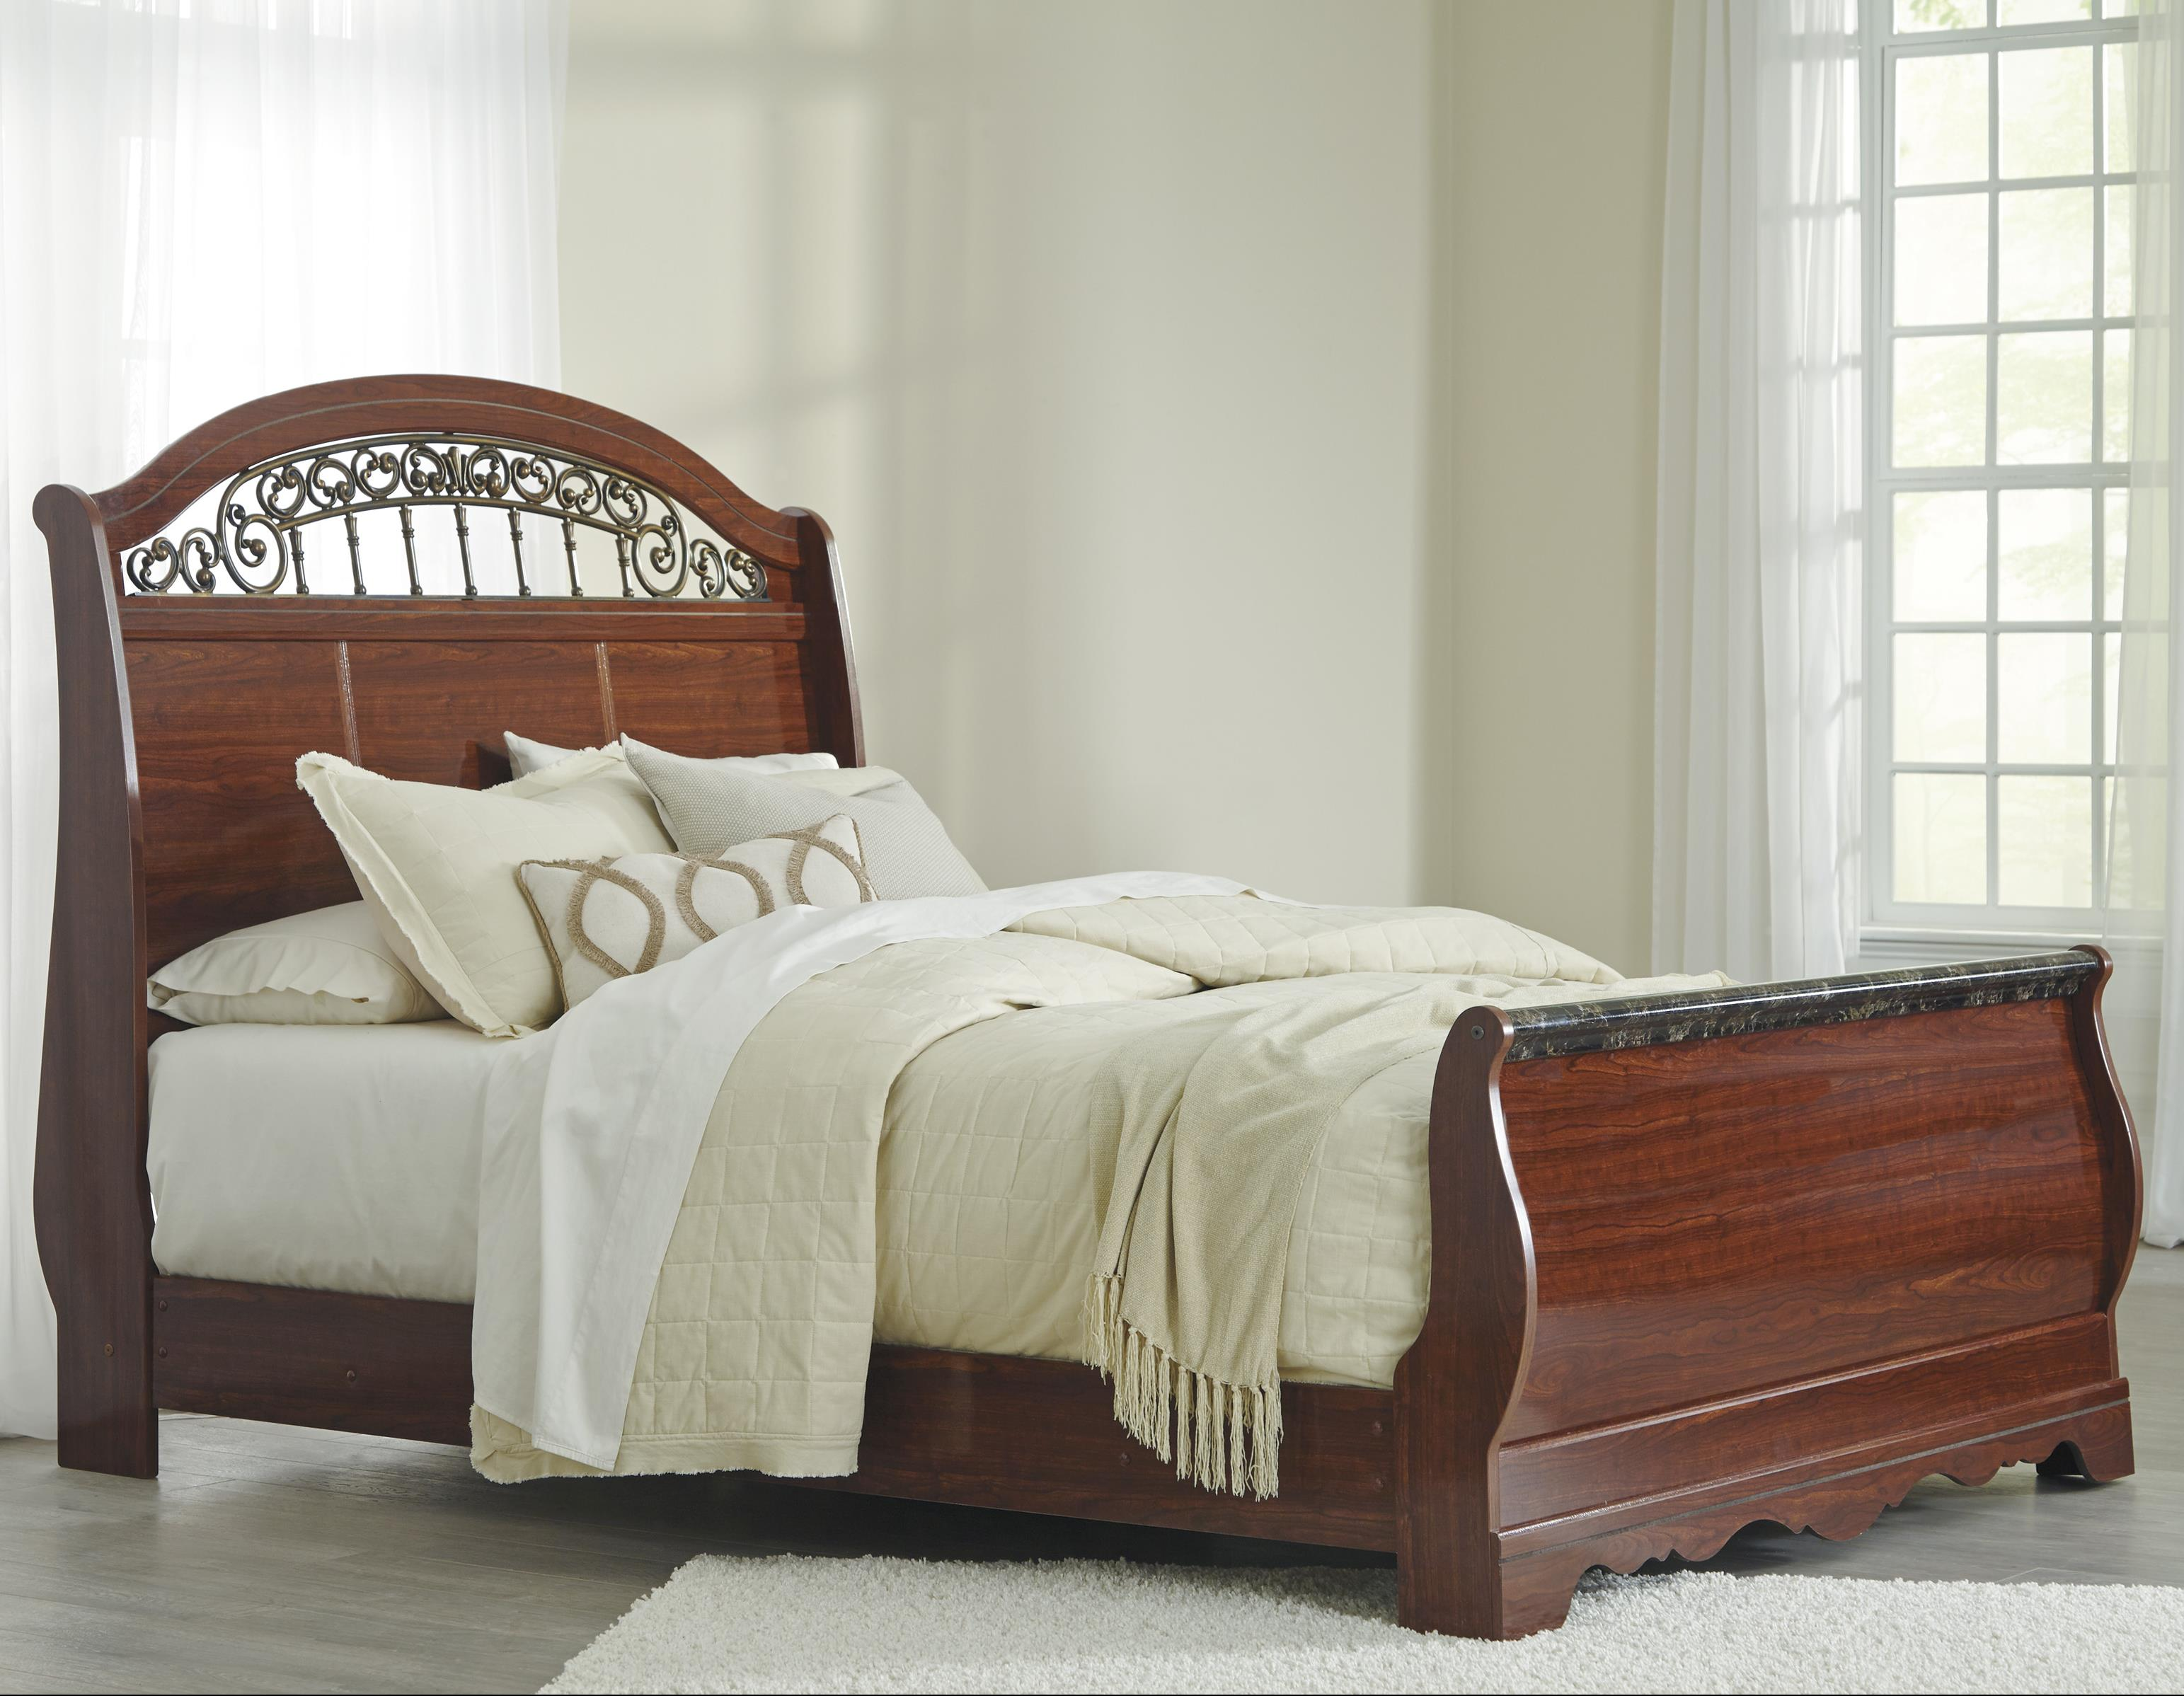 Signature Design by Ashley Brookfield Queen Sleigh Bed - Item Number: B105-77+74+96